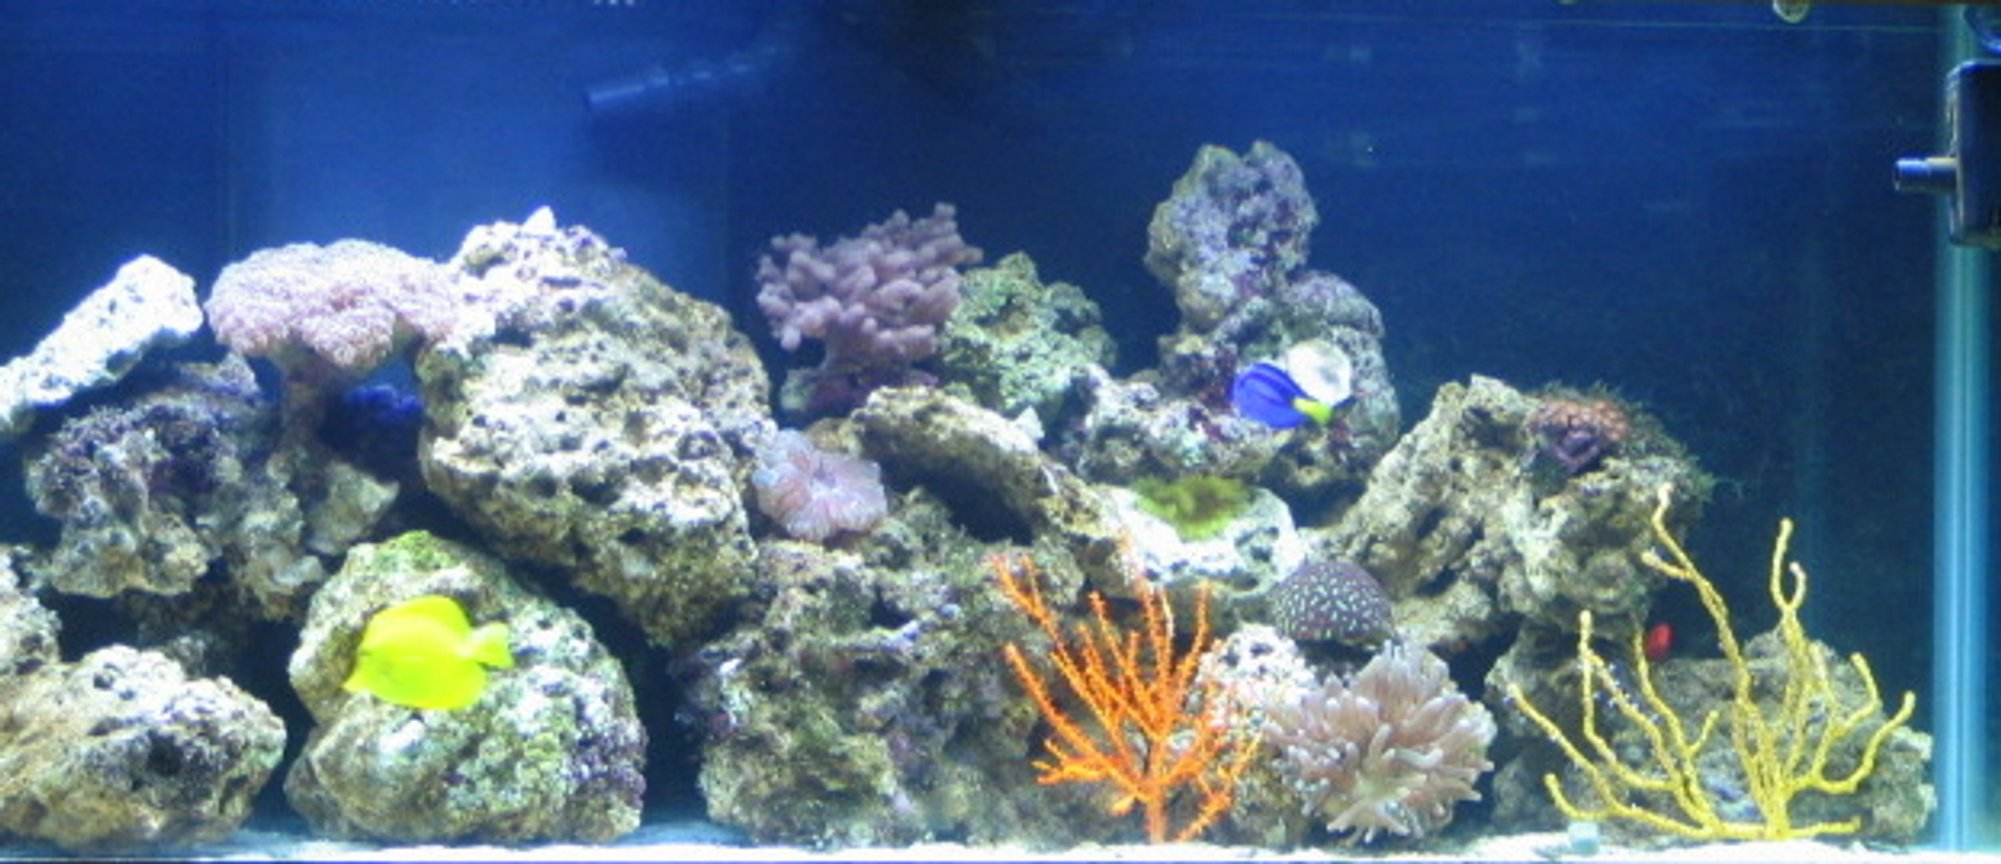 75 gallons reef tank (mostly live coral and fish) - j & k's reef